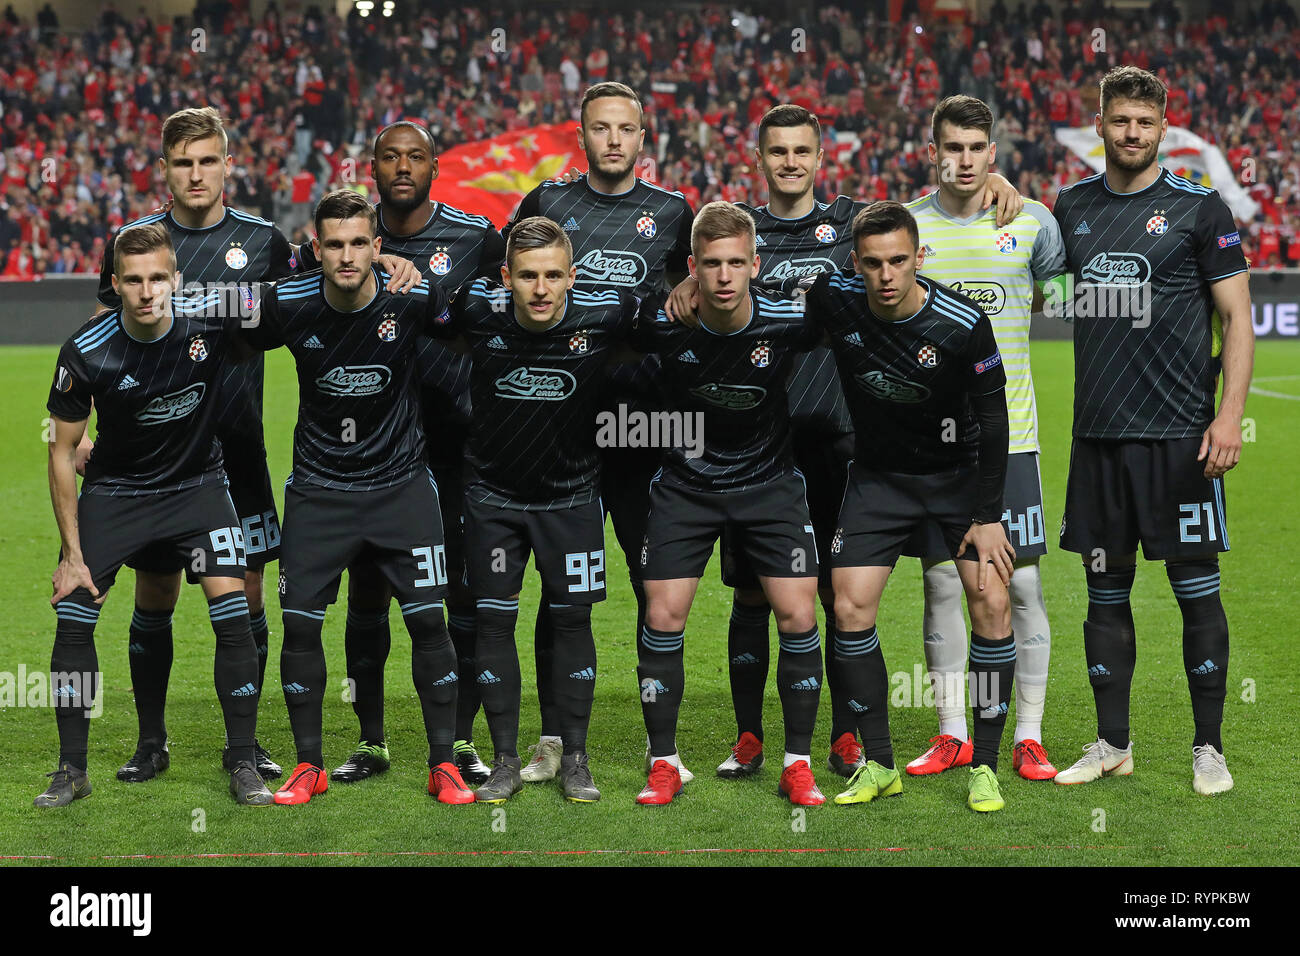 Page 3 Gnk Dinamo Zagreb High Resolution Stock Photography And Images Alamy